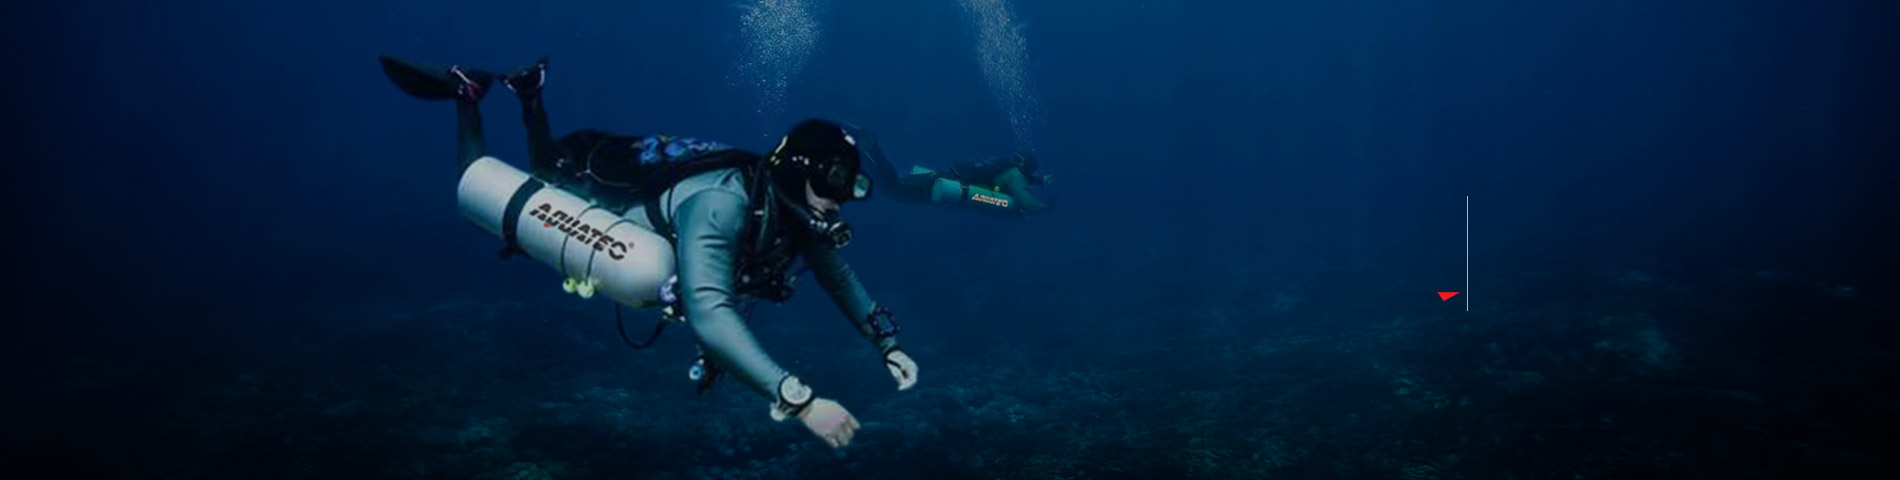 Discover AQUATEC Professional scuba diving equipment